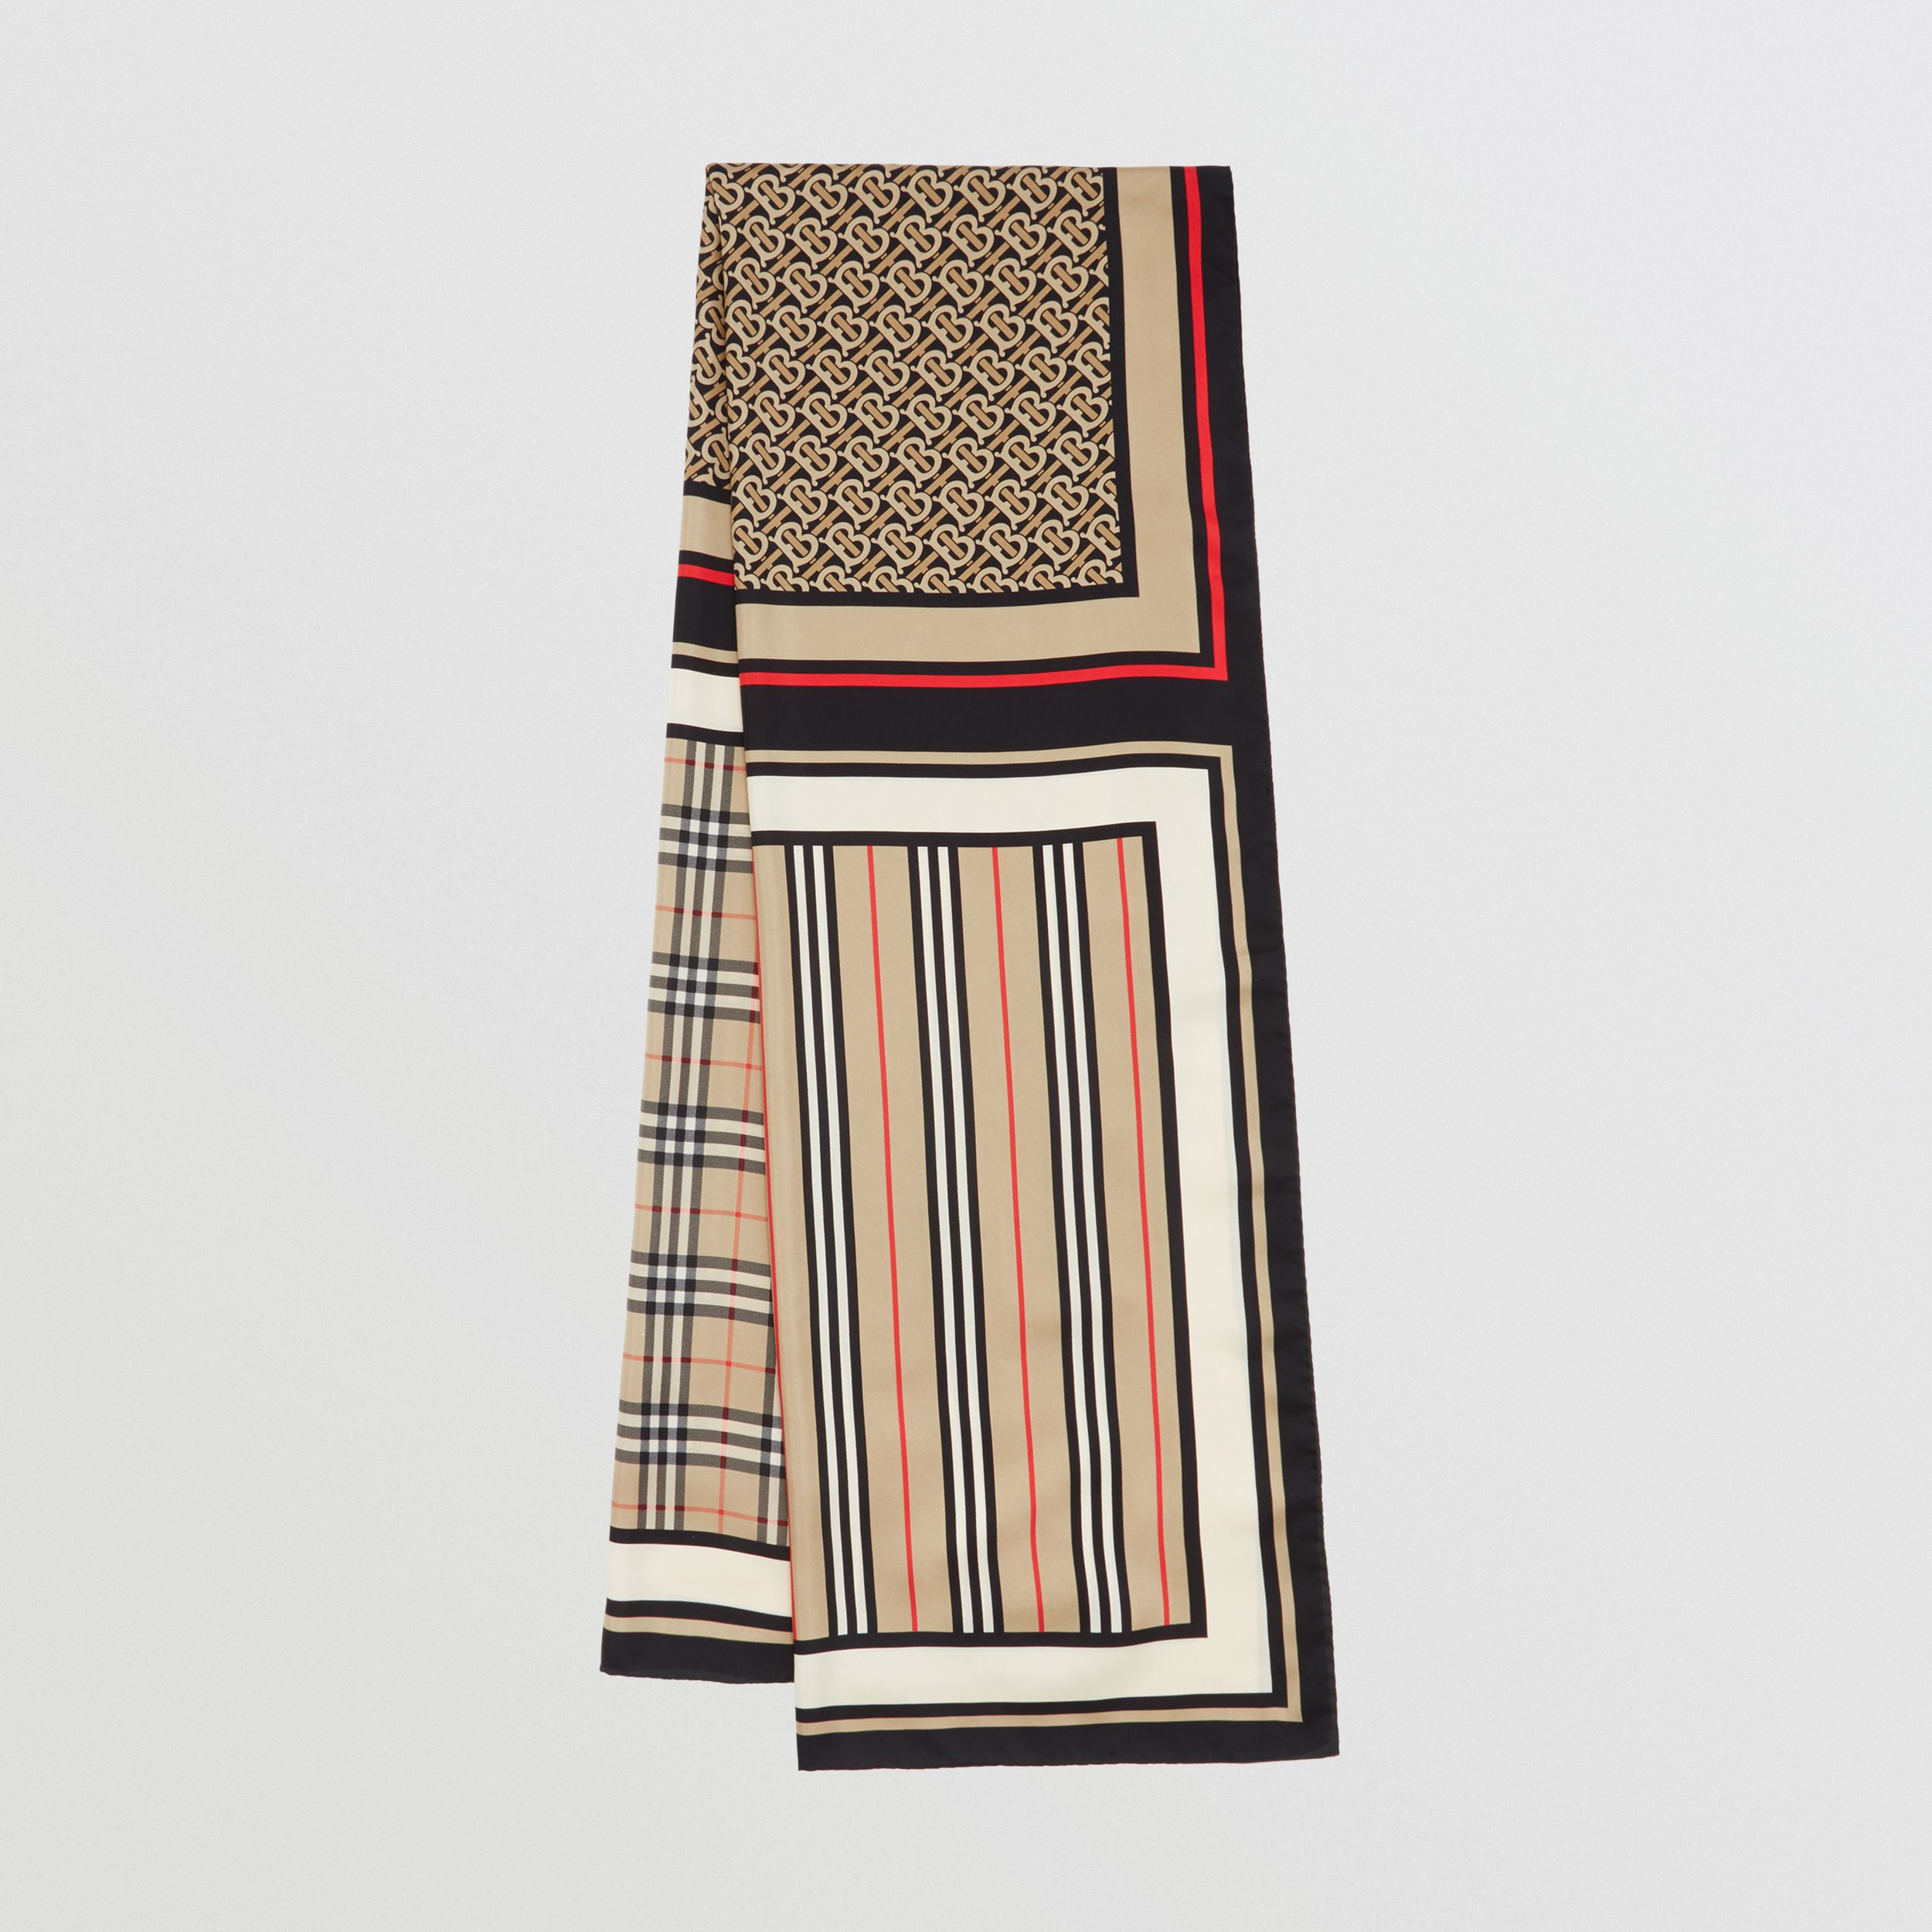 Monogram, Icon Stripe and Check Print Silk Scarf in Archive Beige | Burberry Australia - 1